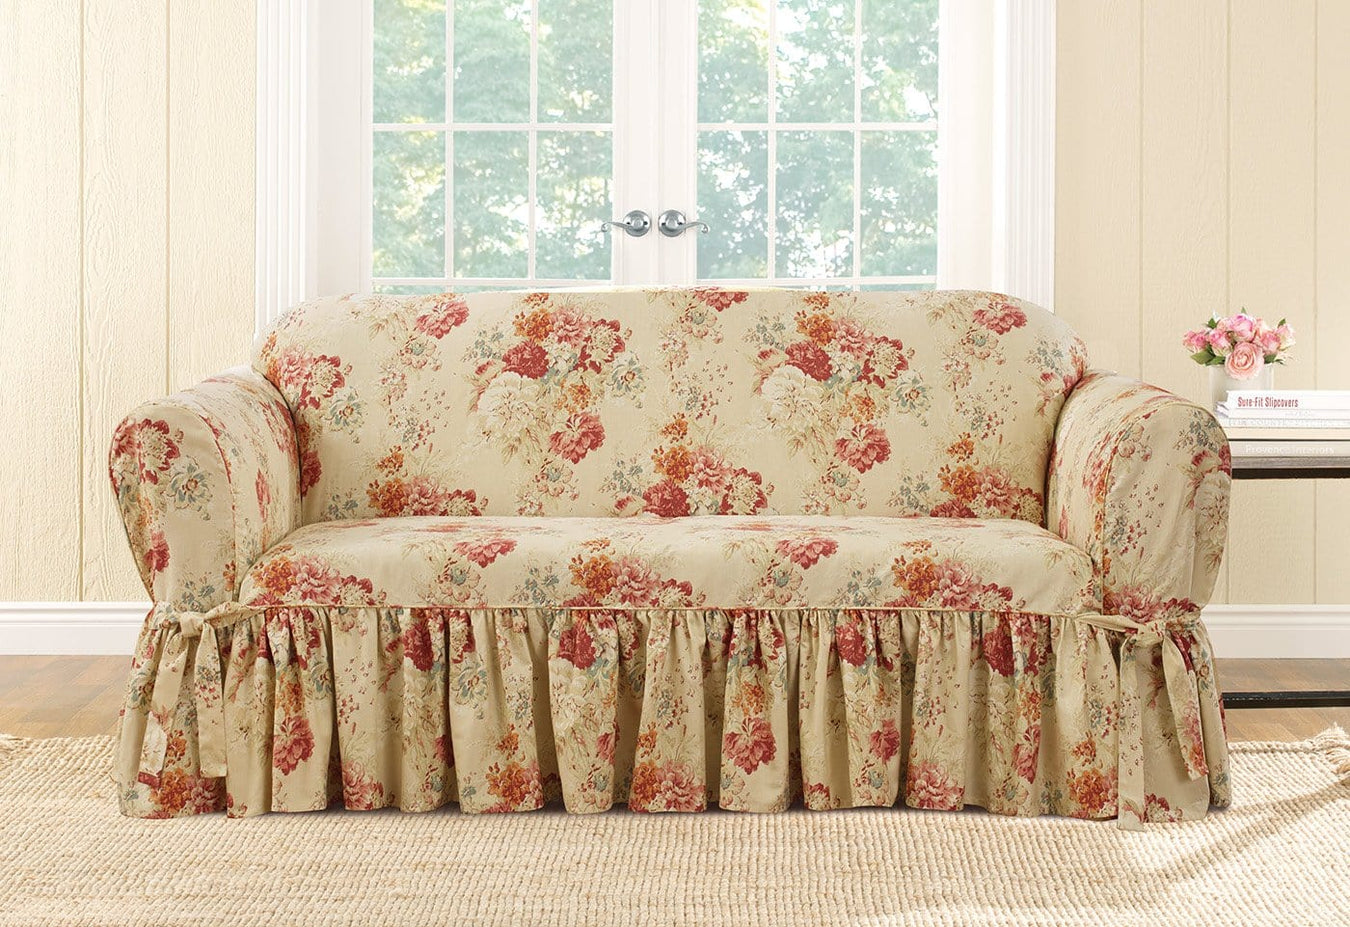 Pleasing Ballad Bouquet By Waverly One Piece Loveseat Slipcover Andrewgaddart Wooden Chair Designs For Living Room Andrewgaddartcom